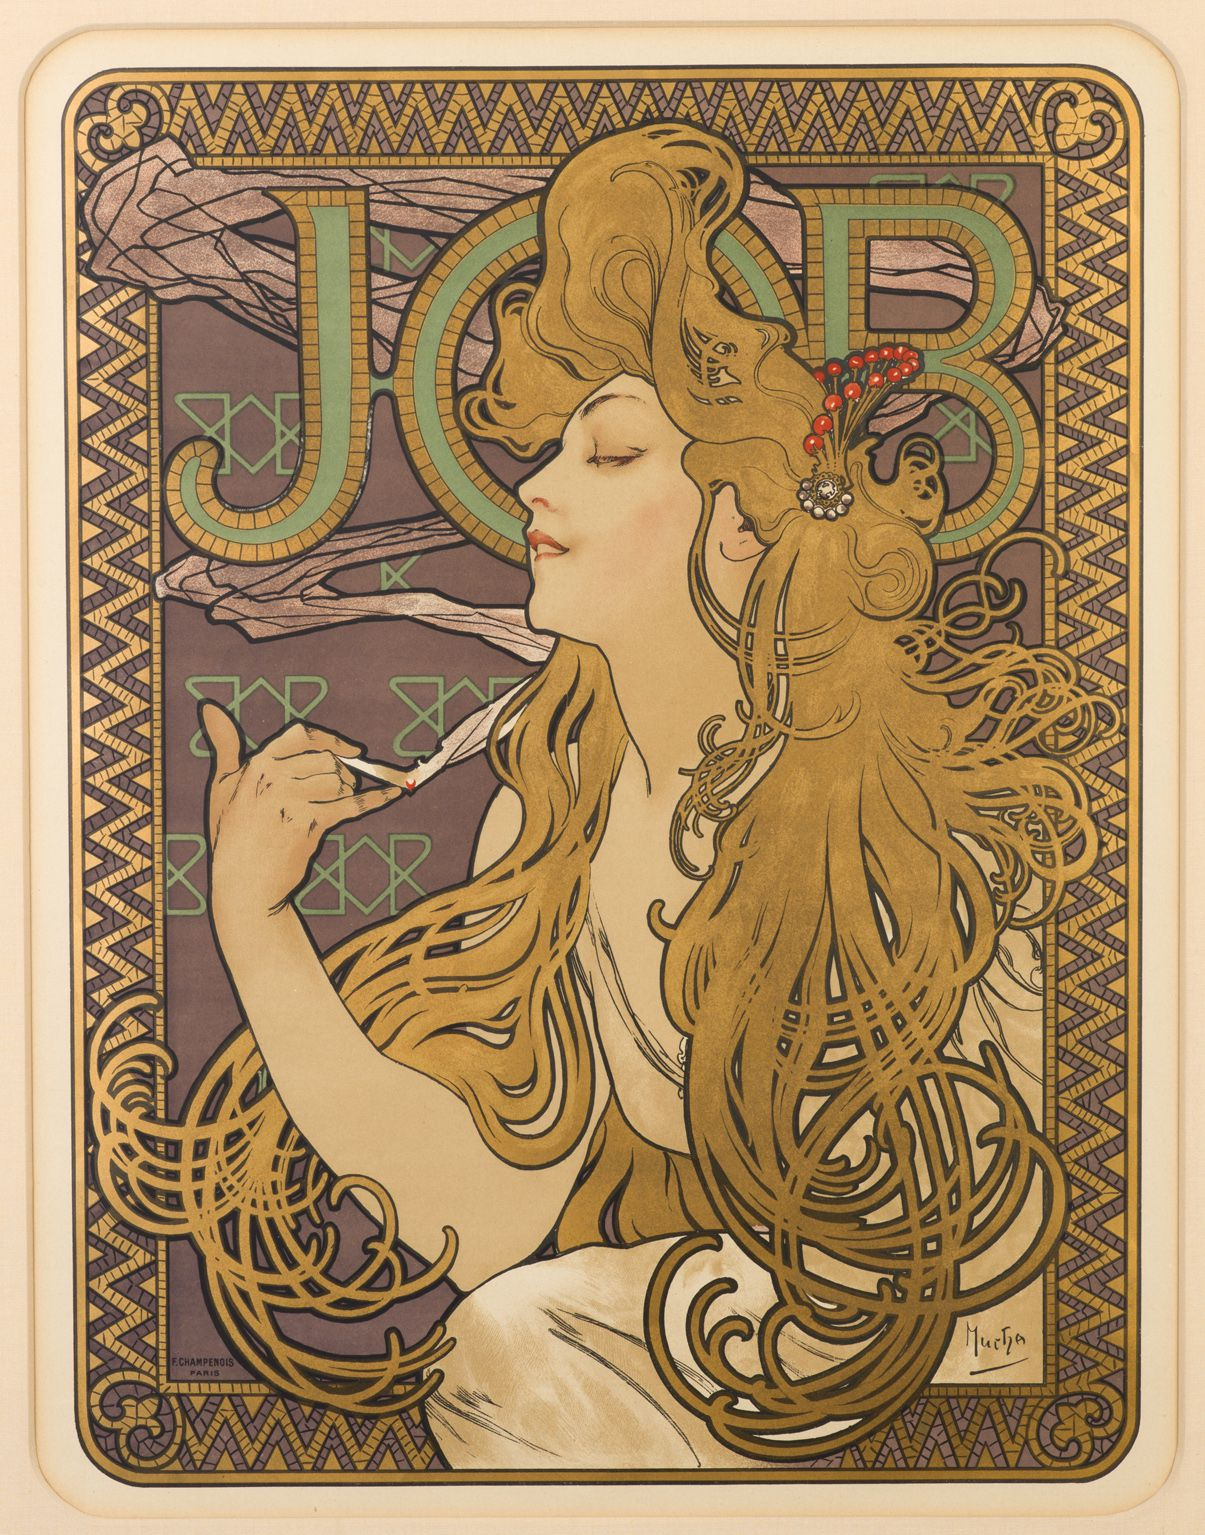 The exhibition of Ivan Lendl's collection of Art Nouveau posters is one of the most important art events in the Czech Republic in 2013.